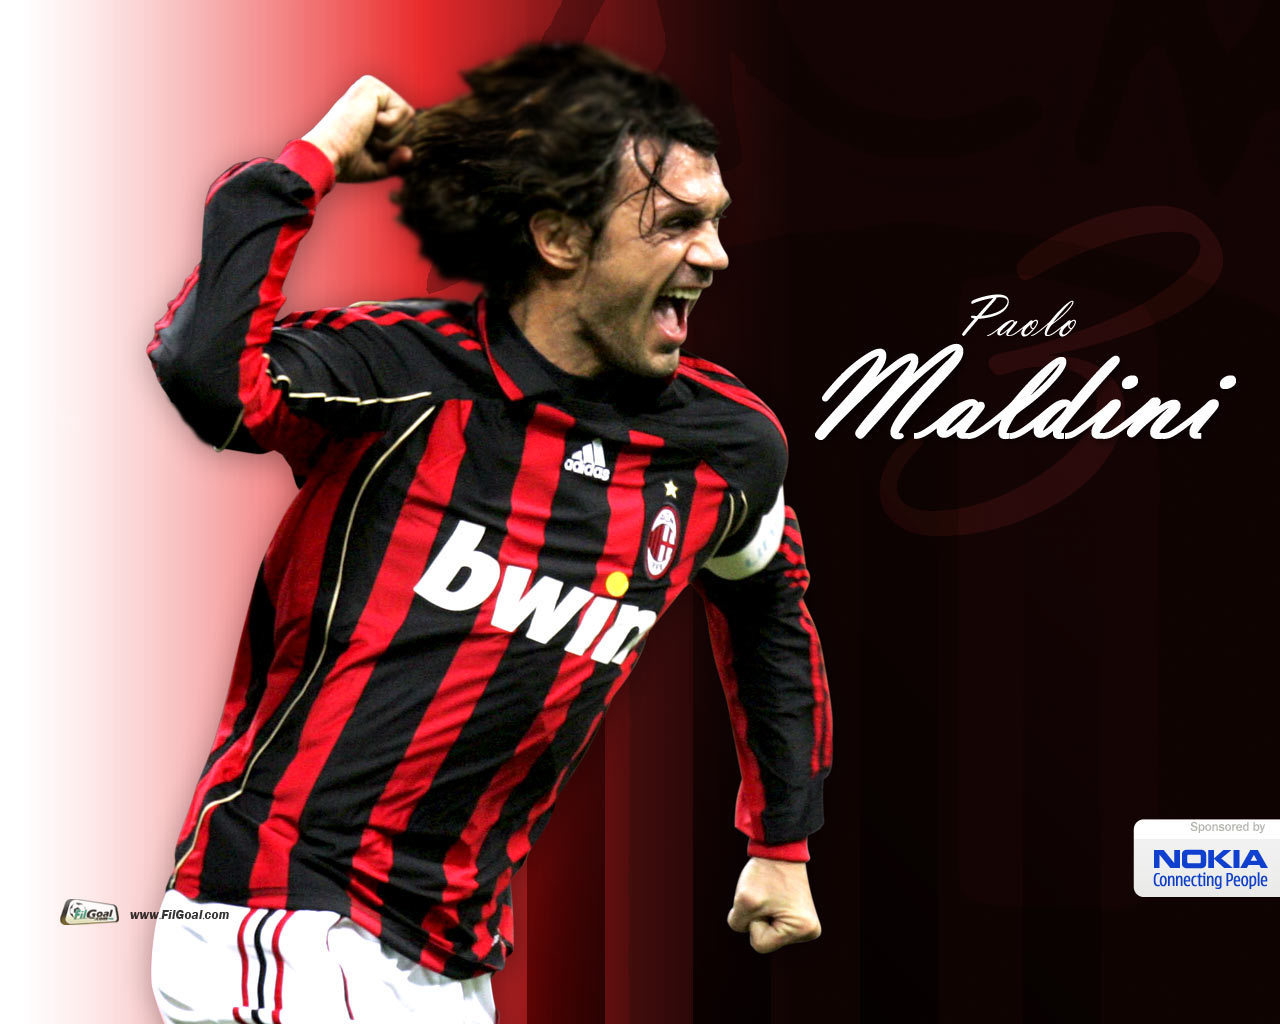 paolo maldini 2012 hd - photo #16